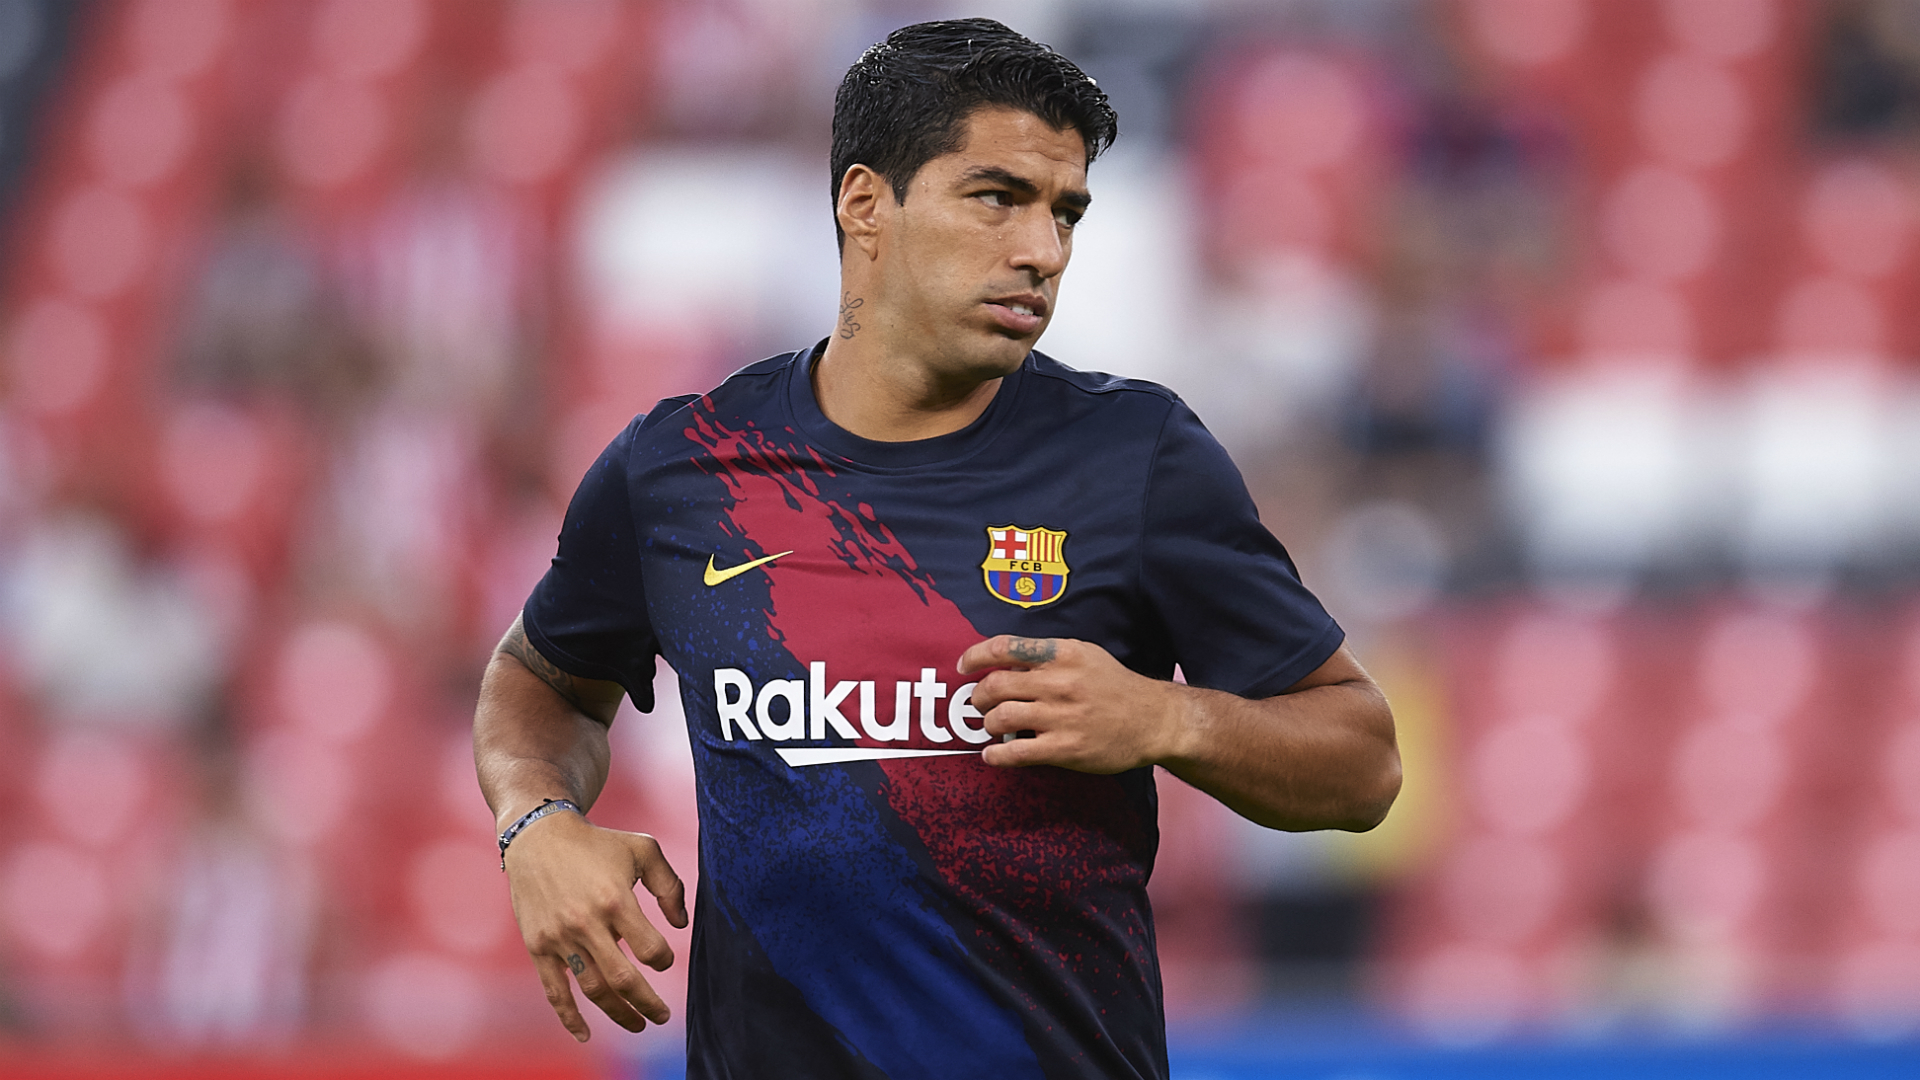 Suarez off injured in Barcelona's opening LaLiga match